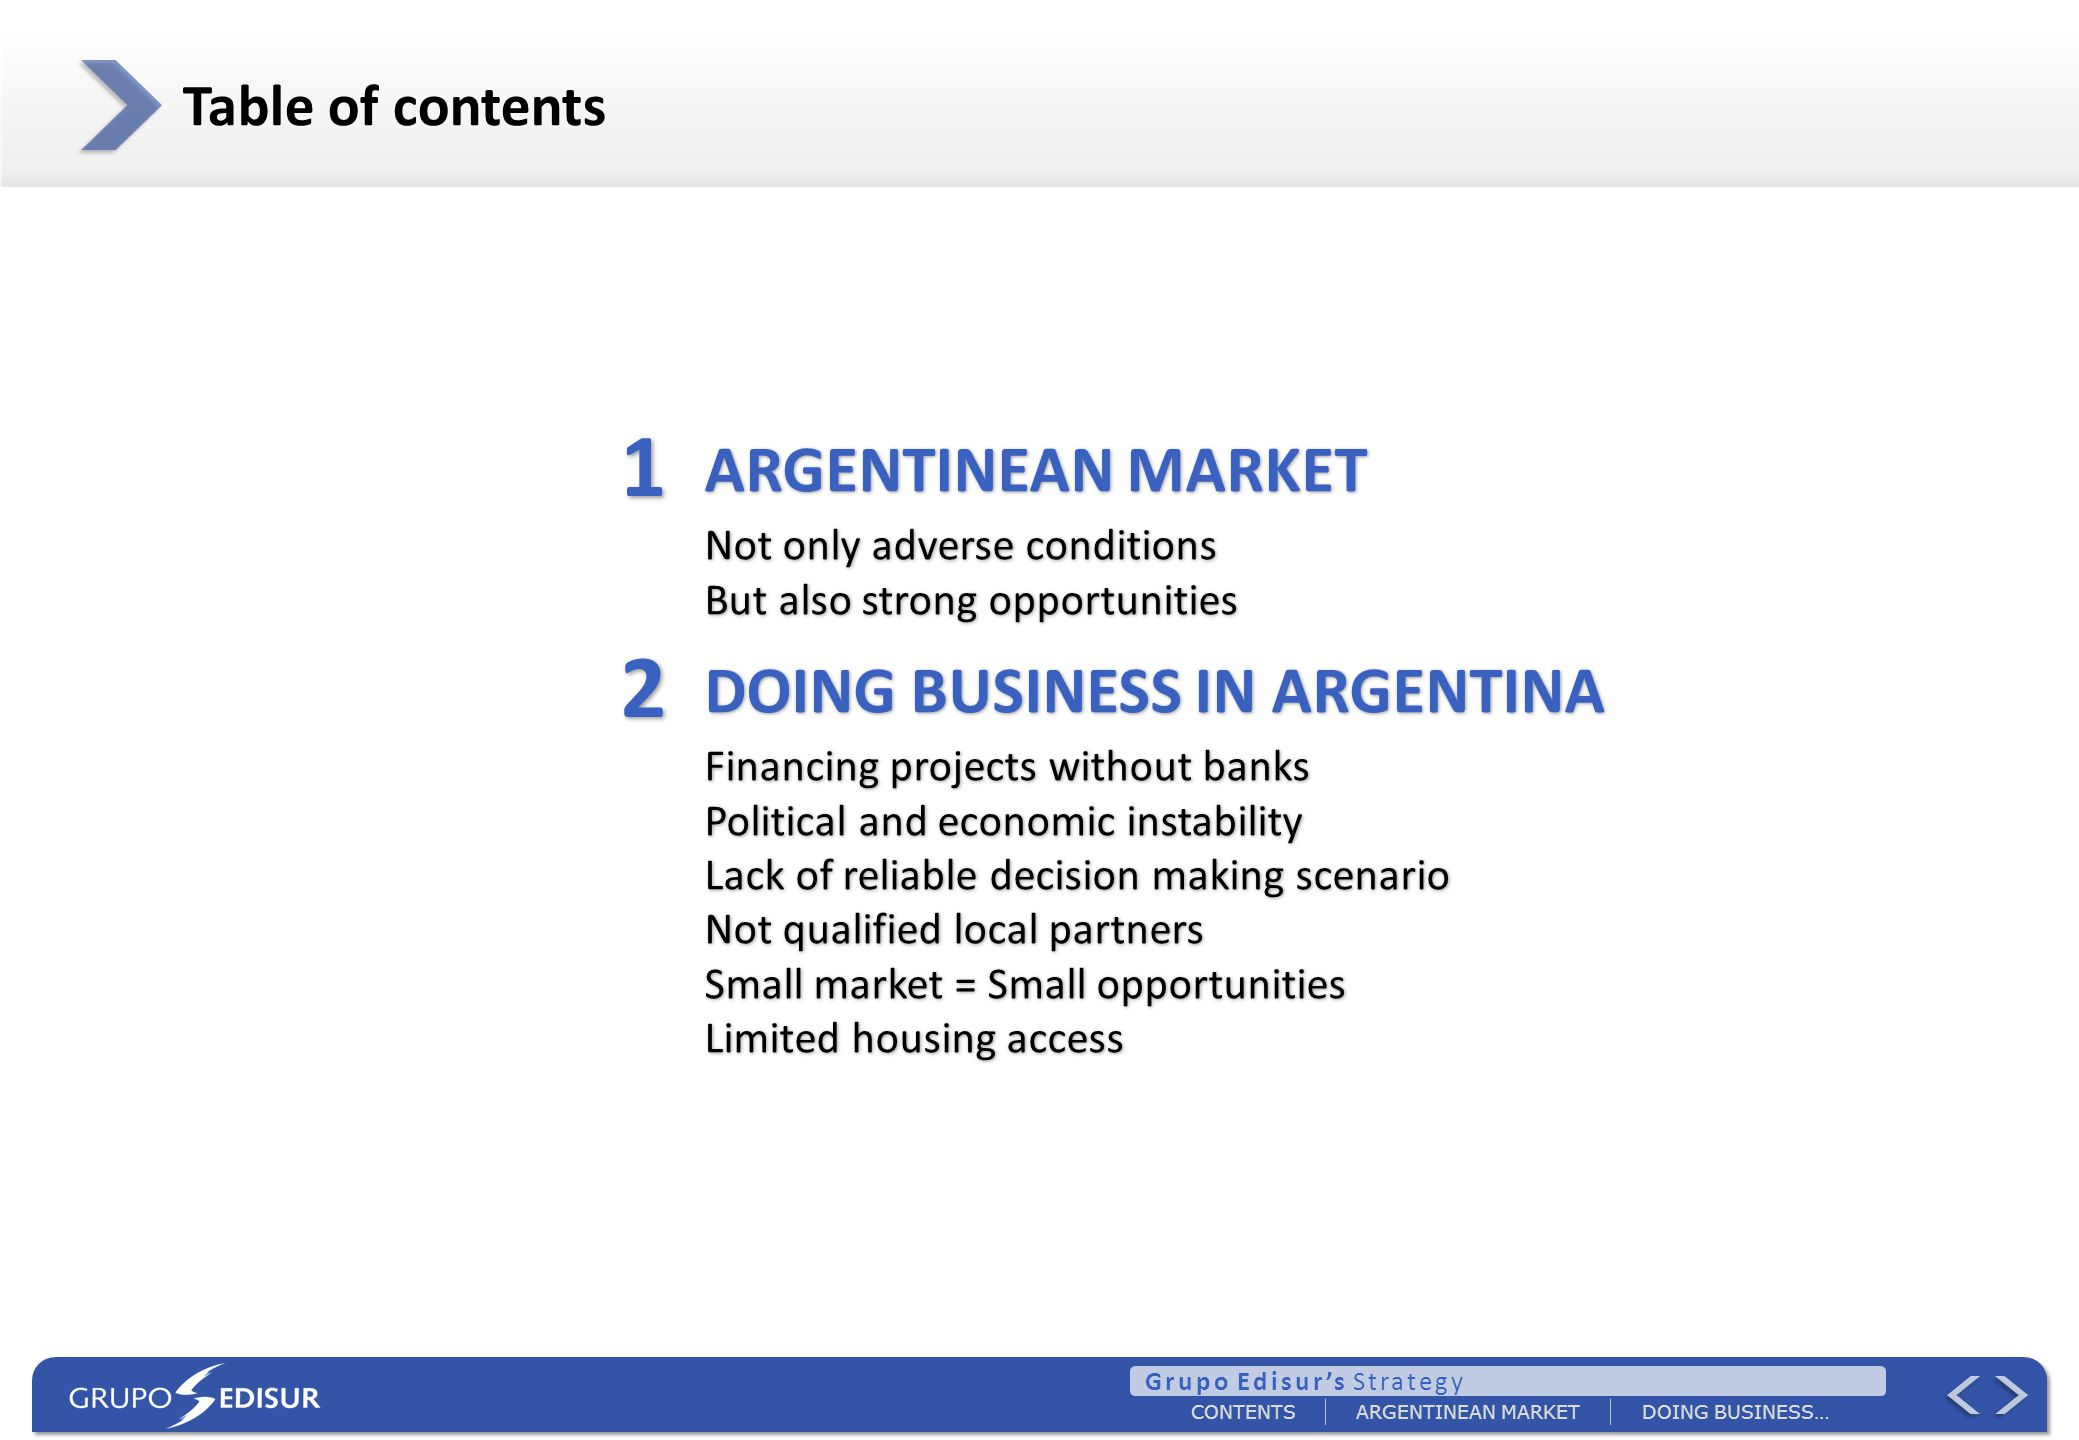 ARGENTINEAN MARKETDOING BUSINESS… CONTENTS Table of contents ARGENTINEAN MARKET Not only adverse conditions But also strong opportunities DOING BUSINESS IN ARGENTINA Financing projects without banks Political and economic instability Lack of reliable decision making scenario Not qualified local partners Small market = Small opportunities Limited housing access ARGENTINEAN MARKET Not only adverse conditions But also strong opportunities DOING BUSINESS IN ARGENTINA Financing projects without banks Political and economic instability Lack of reliable decision making scenario Not qualified local partners Small market = Small opportunities Limited housing access 1 1 2 2